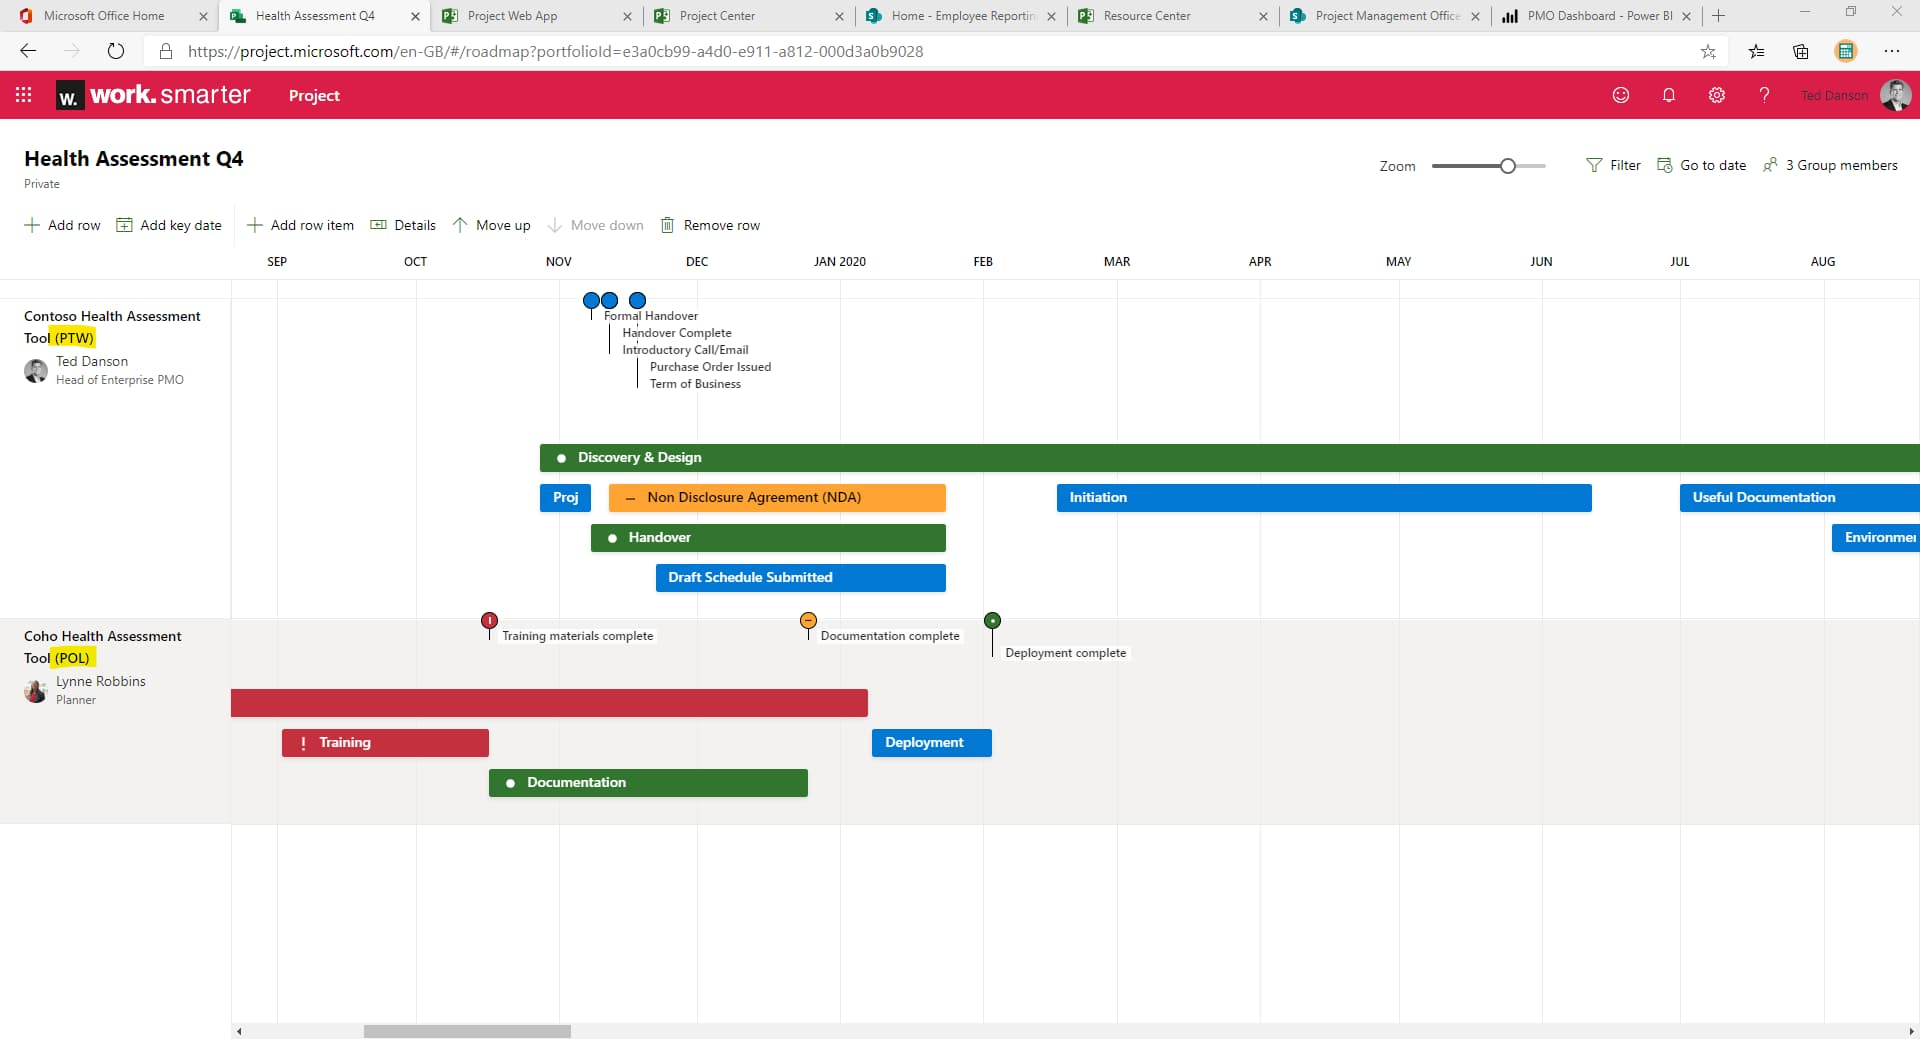 a combined roadmap view showing plans from Project for The Web and Project Online